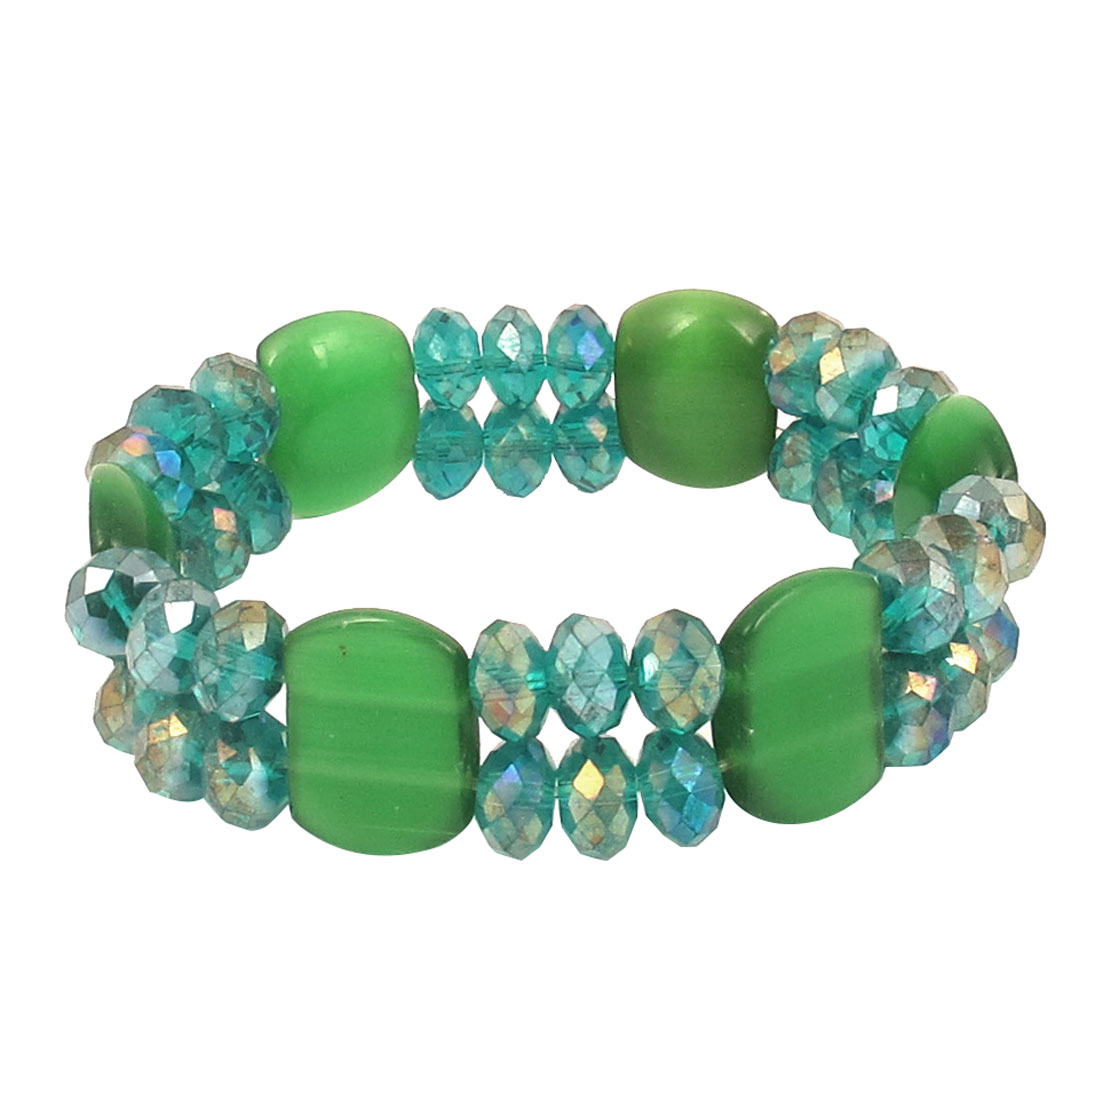 Faceted Faux Crystal Opal Beads Decor Elastic Wrist Bangle Bracelet Green Teal for Lady